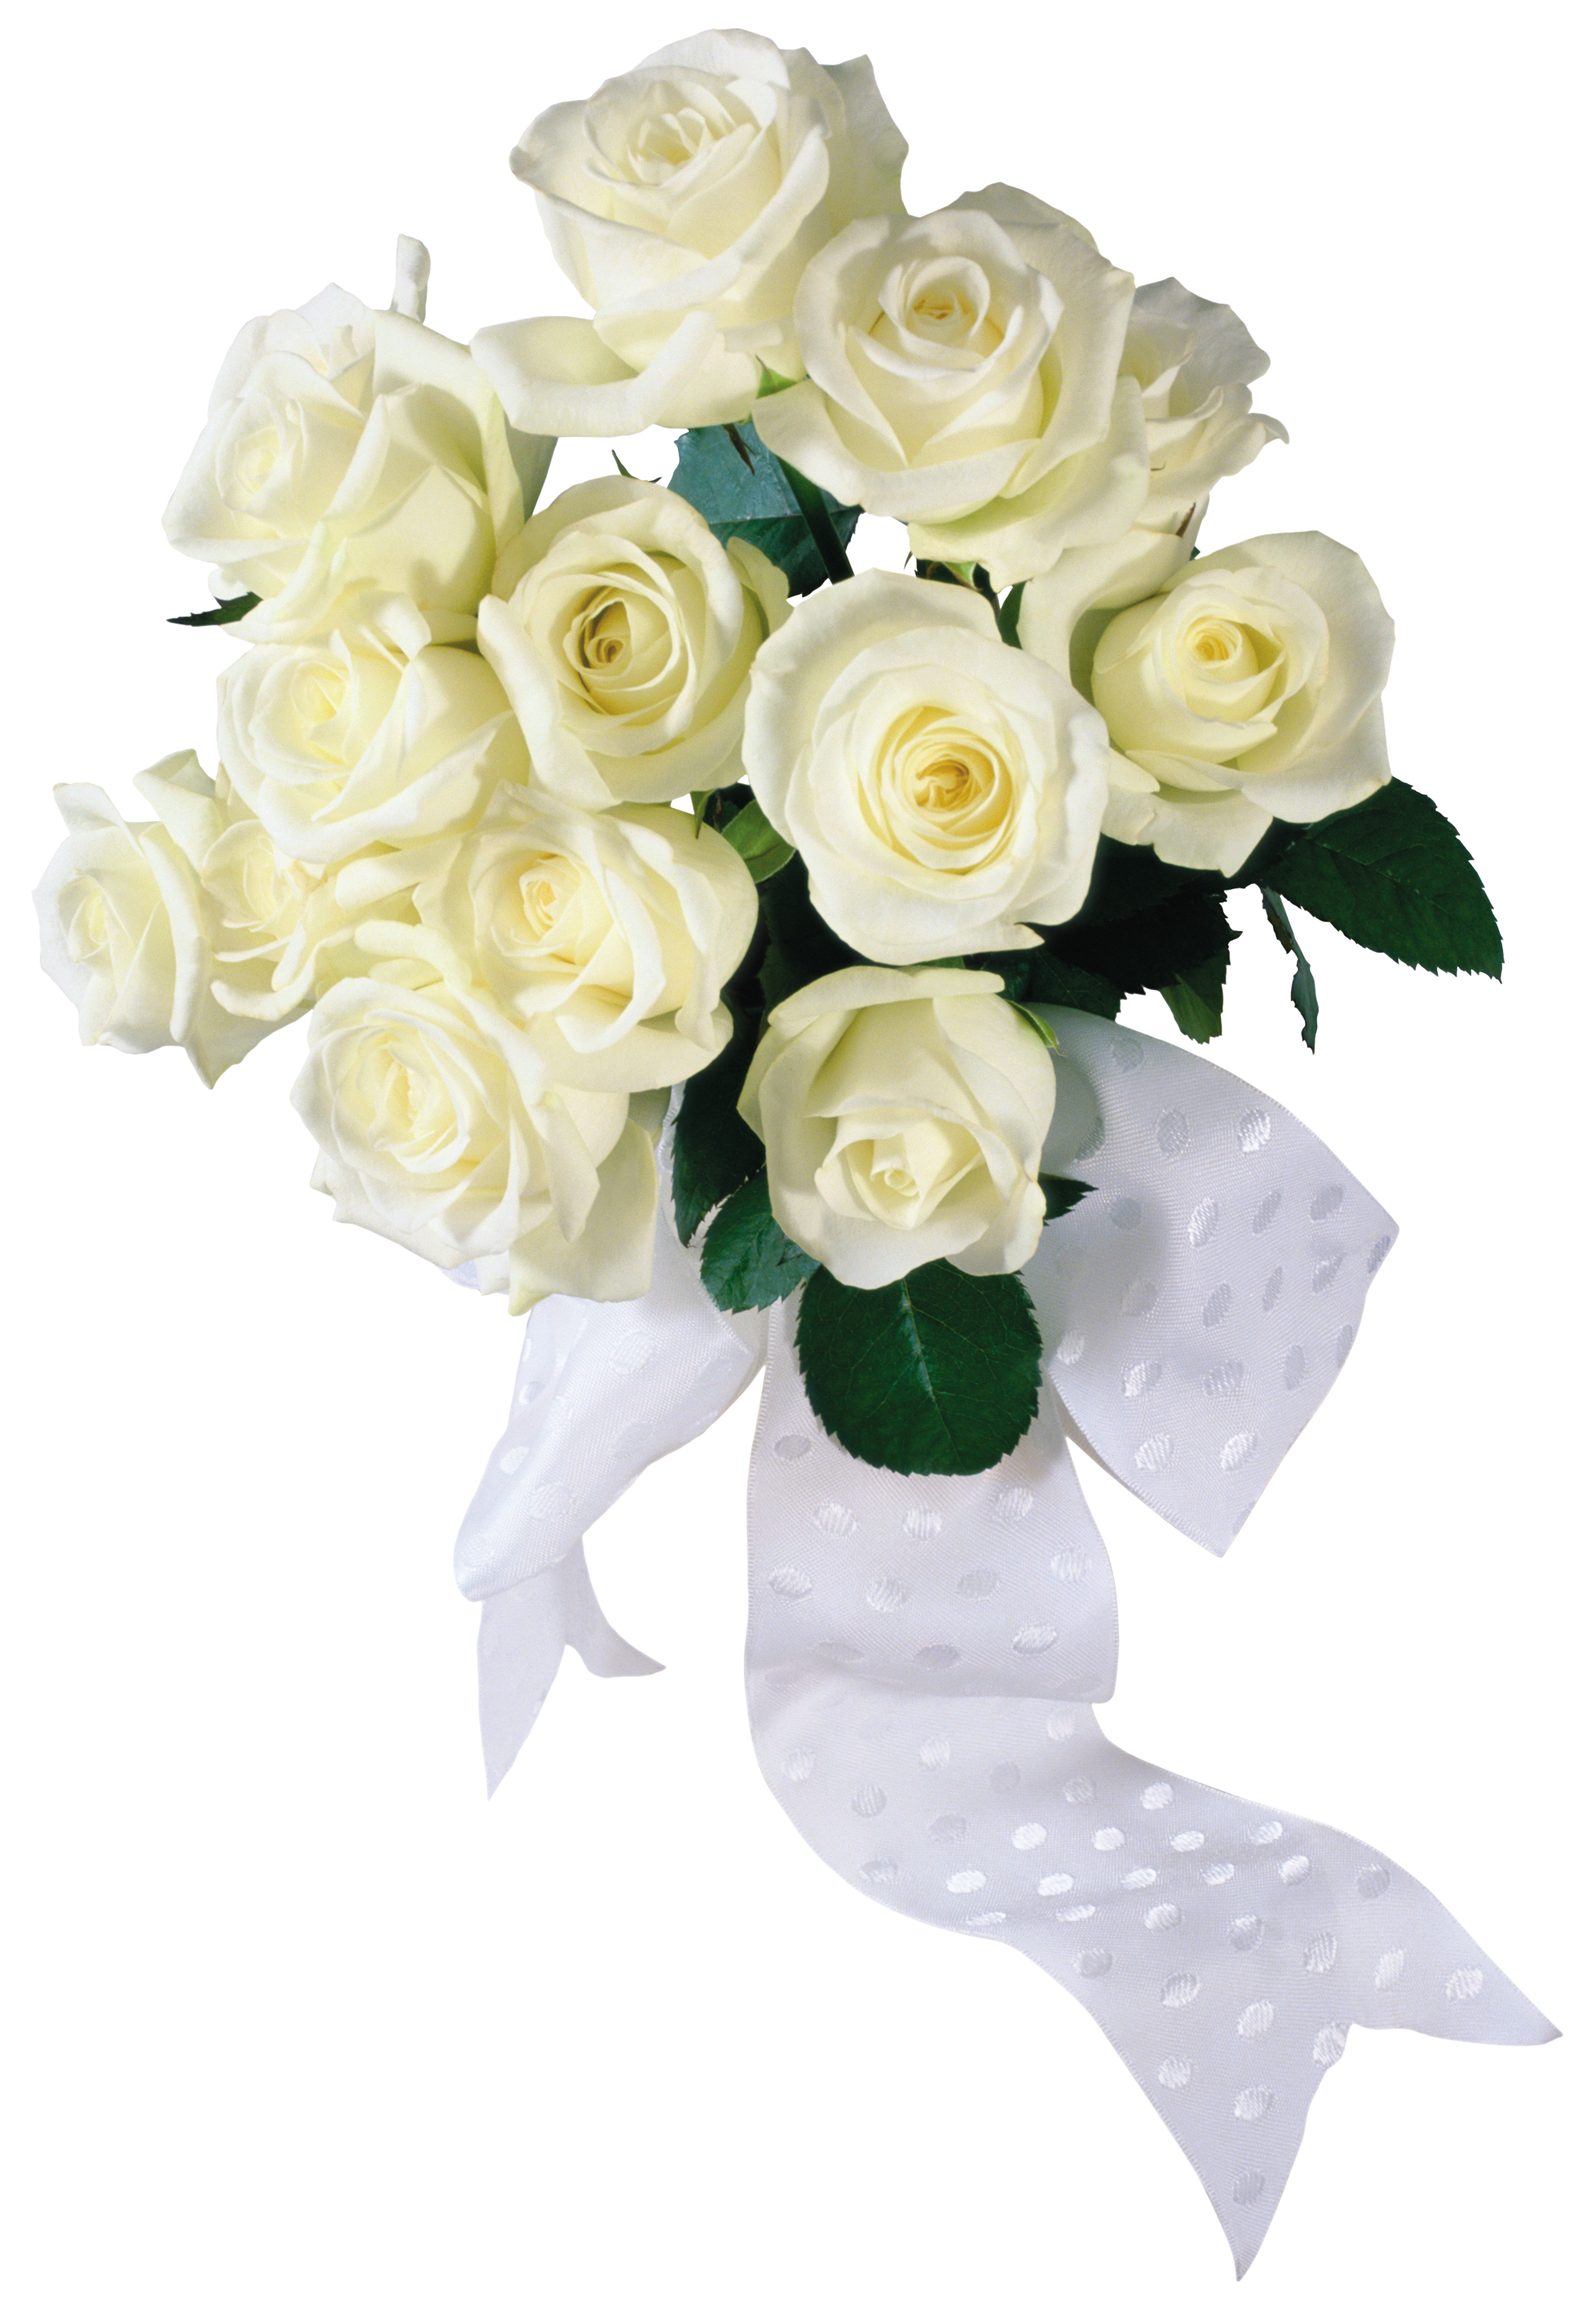 Wedding flower bouquet clipart black and white image black and white White roses PNG images, free download flower pixtures image black and white